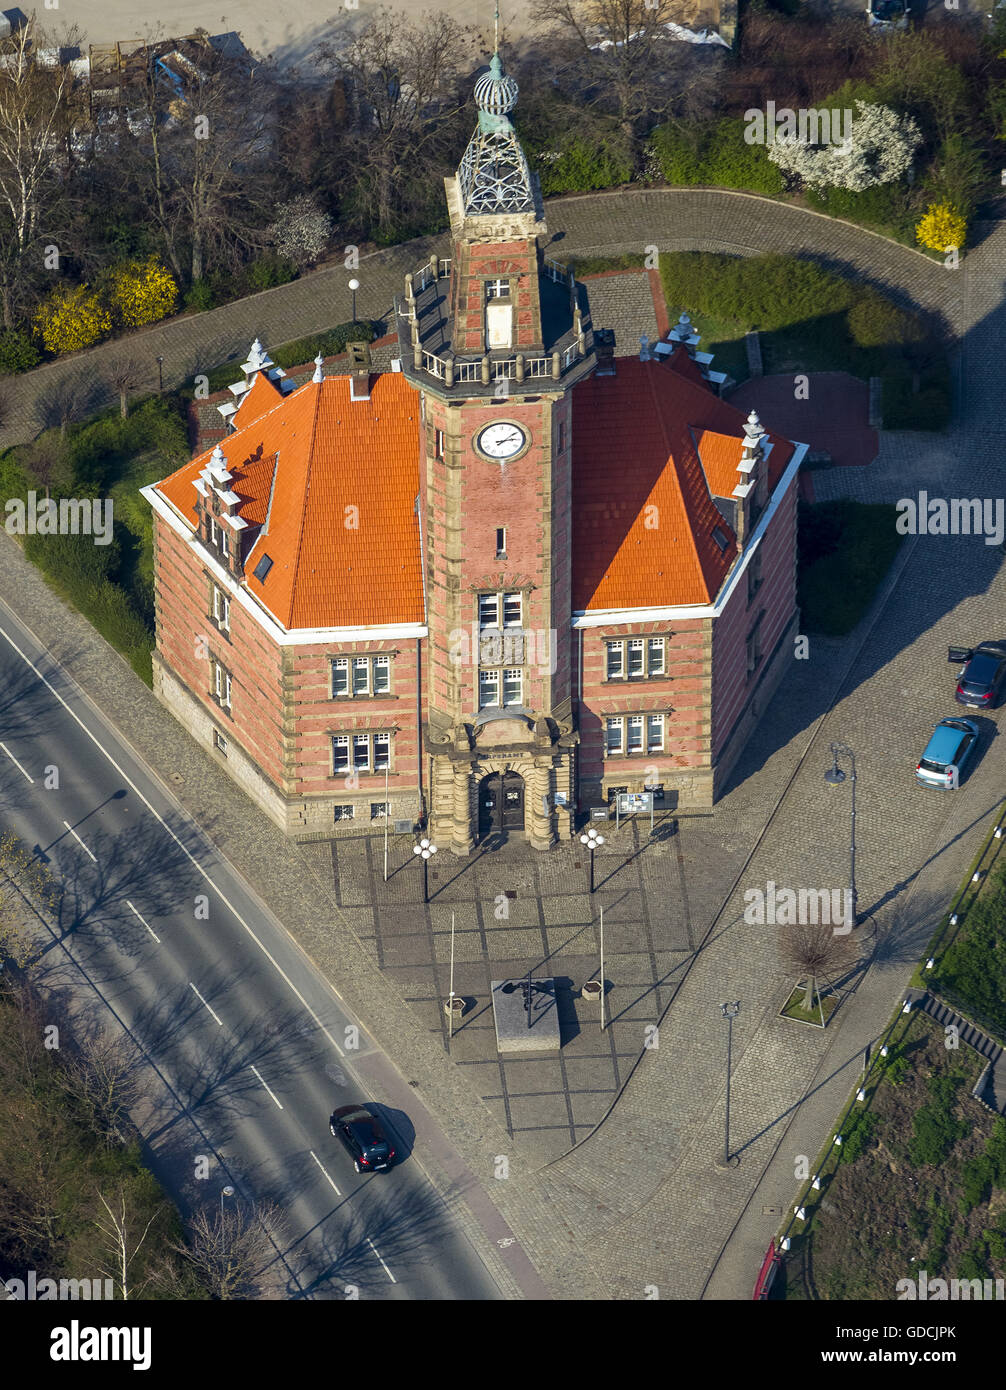 Aerial, Old Port Authority Dortmund, Dortmund habour, Dortmund, Ruhr area, North Rhine-westphalia, Germany, Europe, - Stock Image